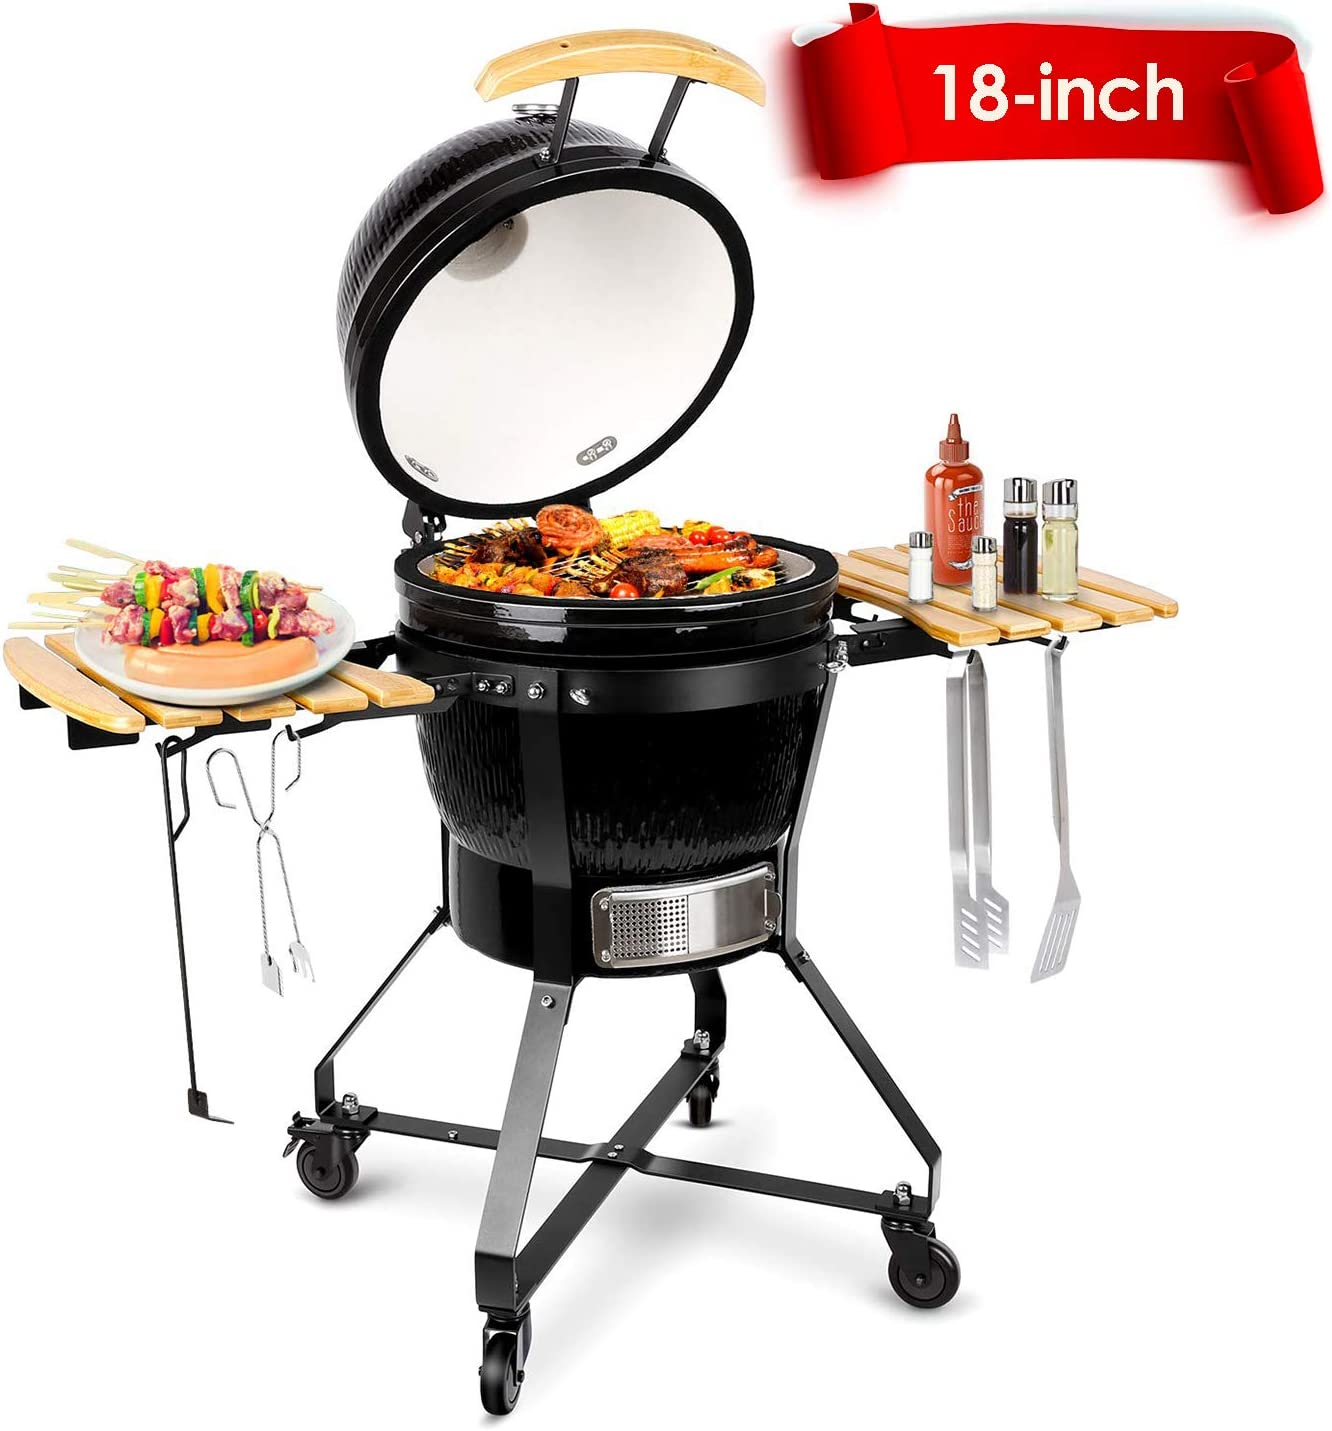 TUSY 18-inch Advanced Ceramic Charcoal Grill:A classic oven integrated ceramic Kamado grill